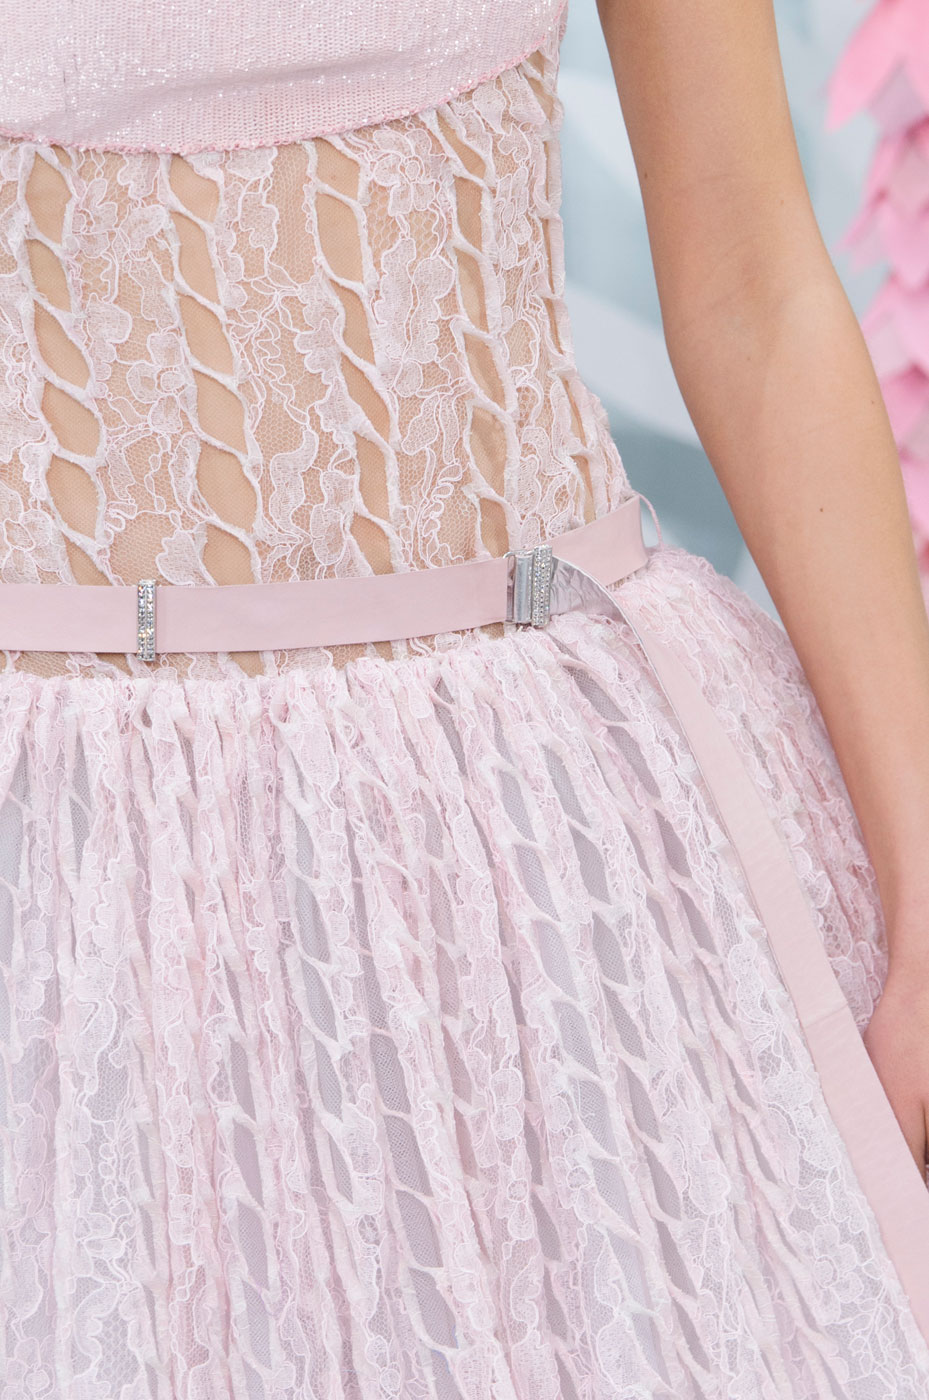 Chanel-fashion-runway-show-close-ups-haute-couture-paris-spring-summer-2015-the-impression-136